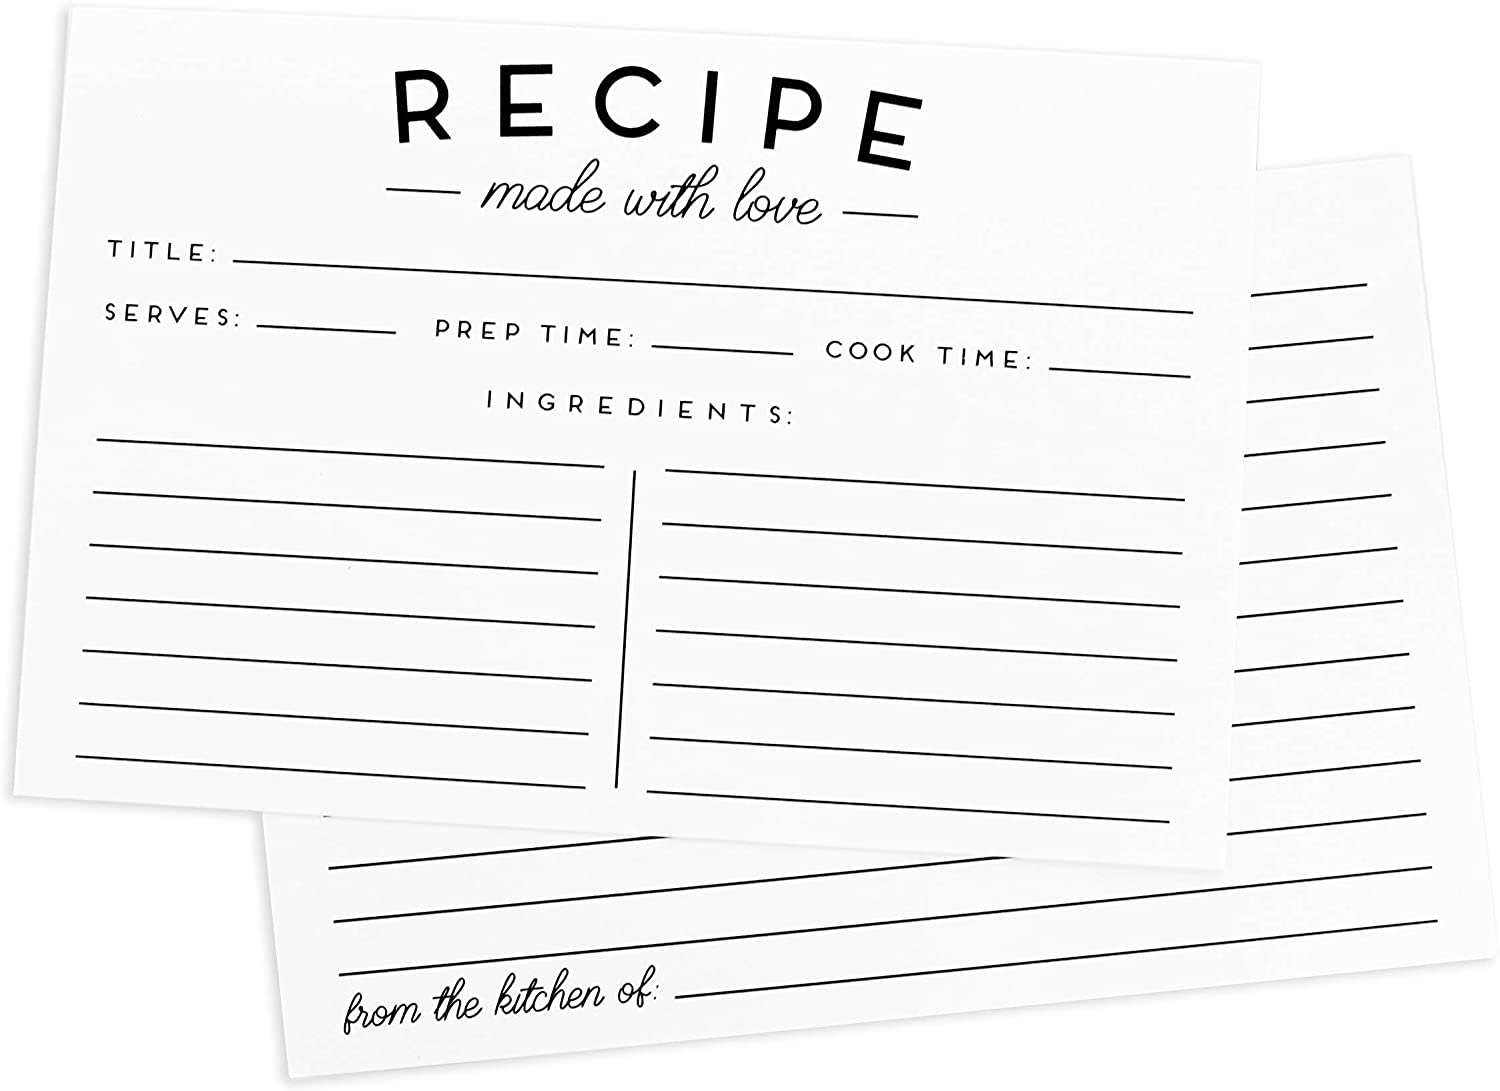 Image of a Recipe Card